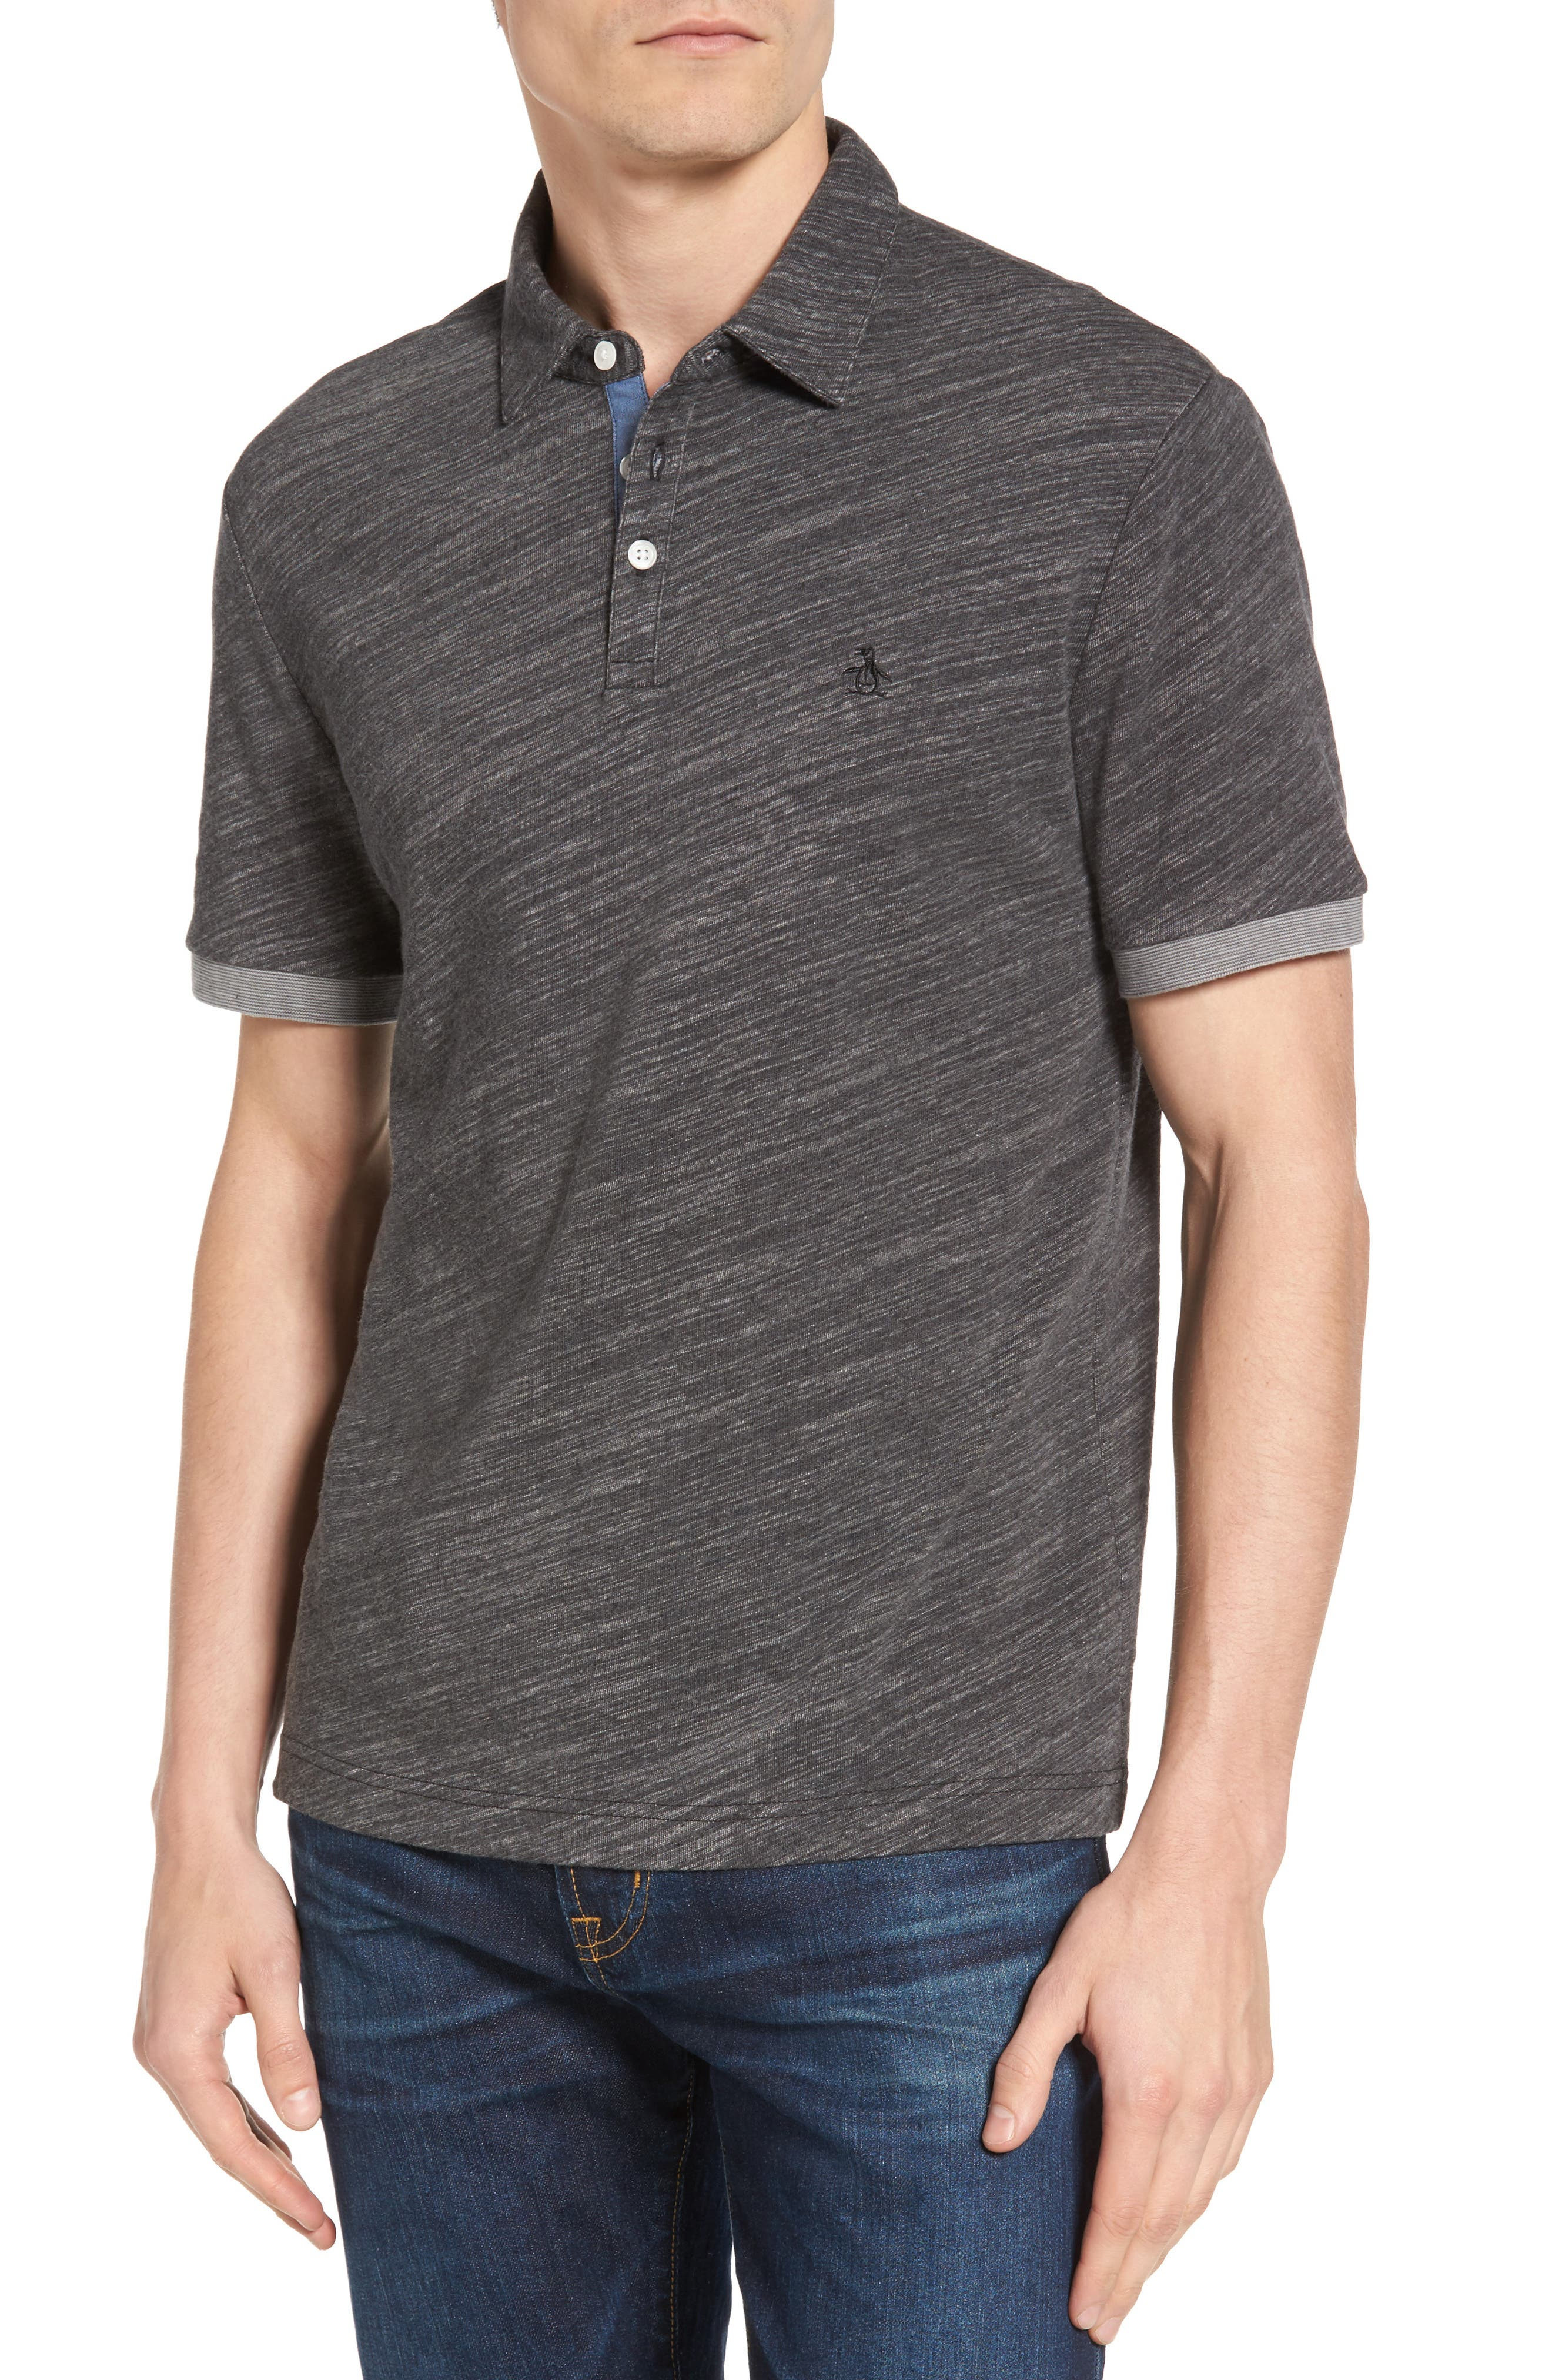 Original Penguin Slub Jersey Polo